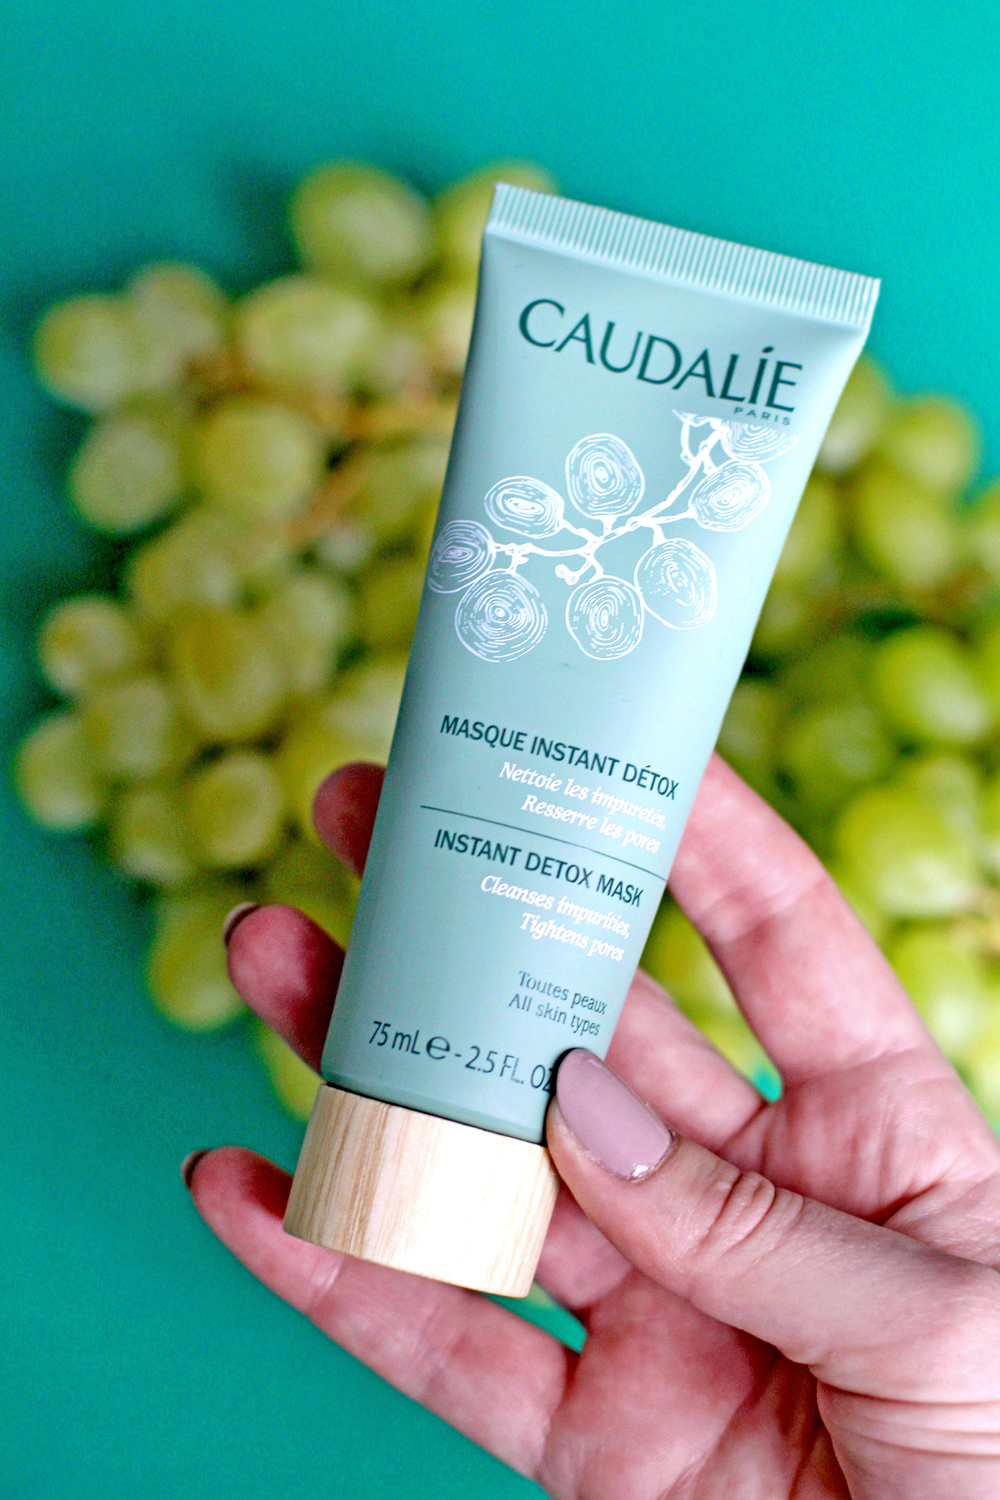 Caudalie Instant Detox Mask - UK beauty blog